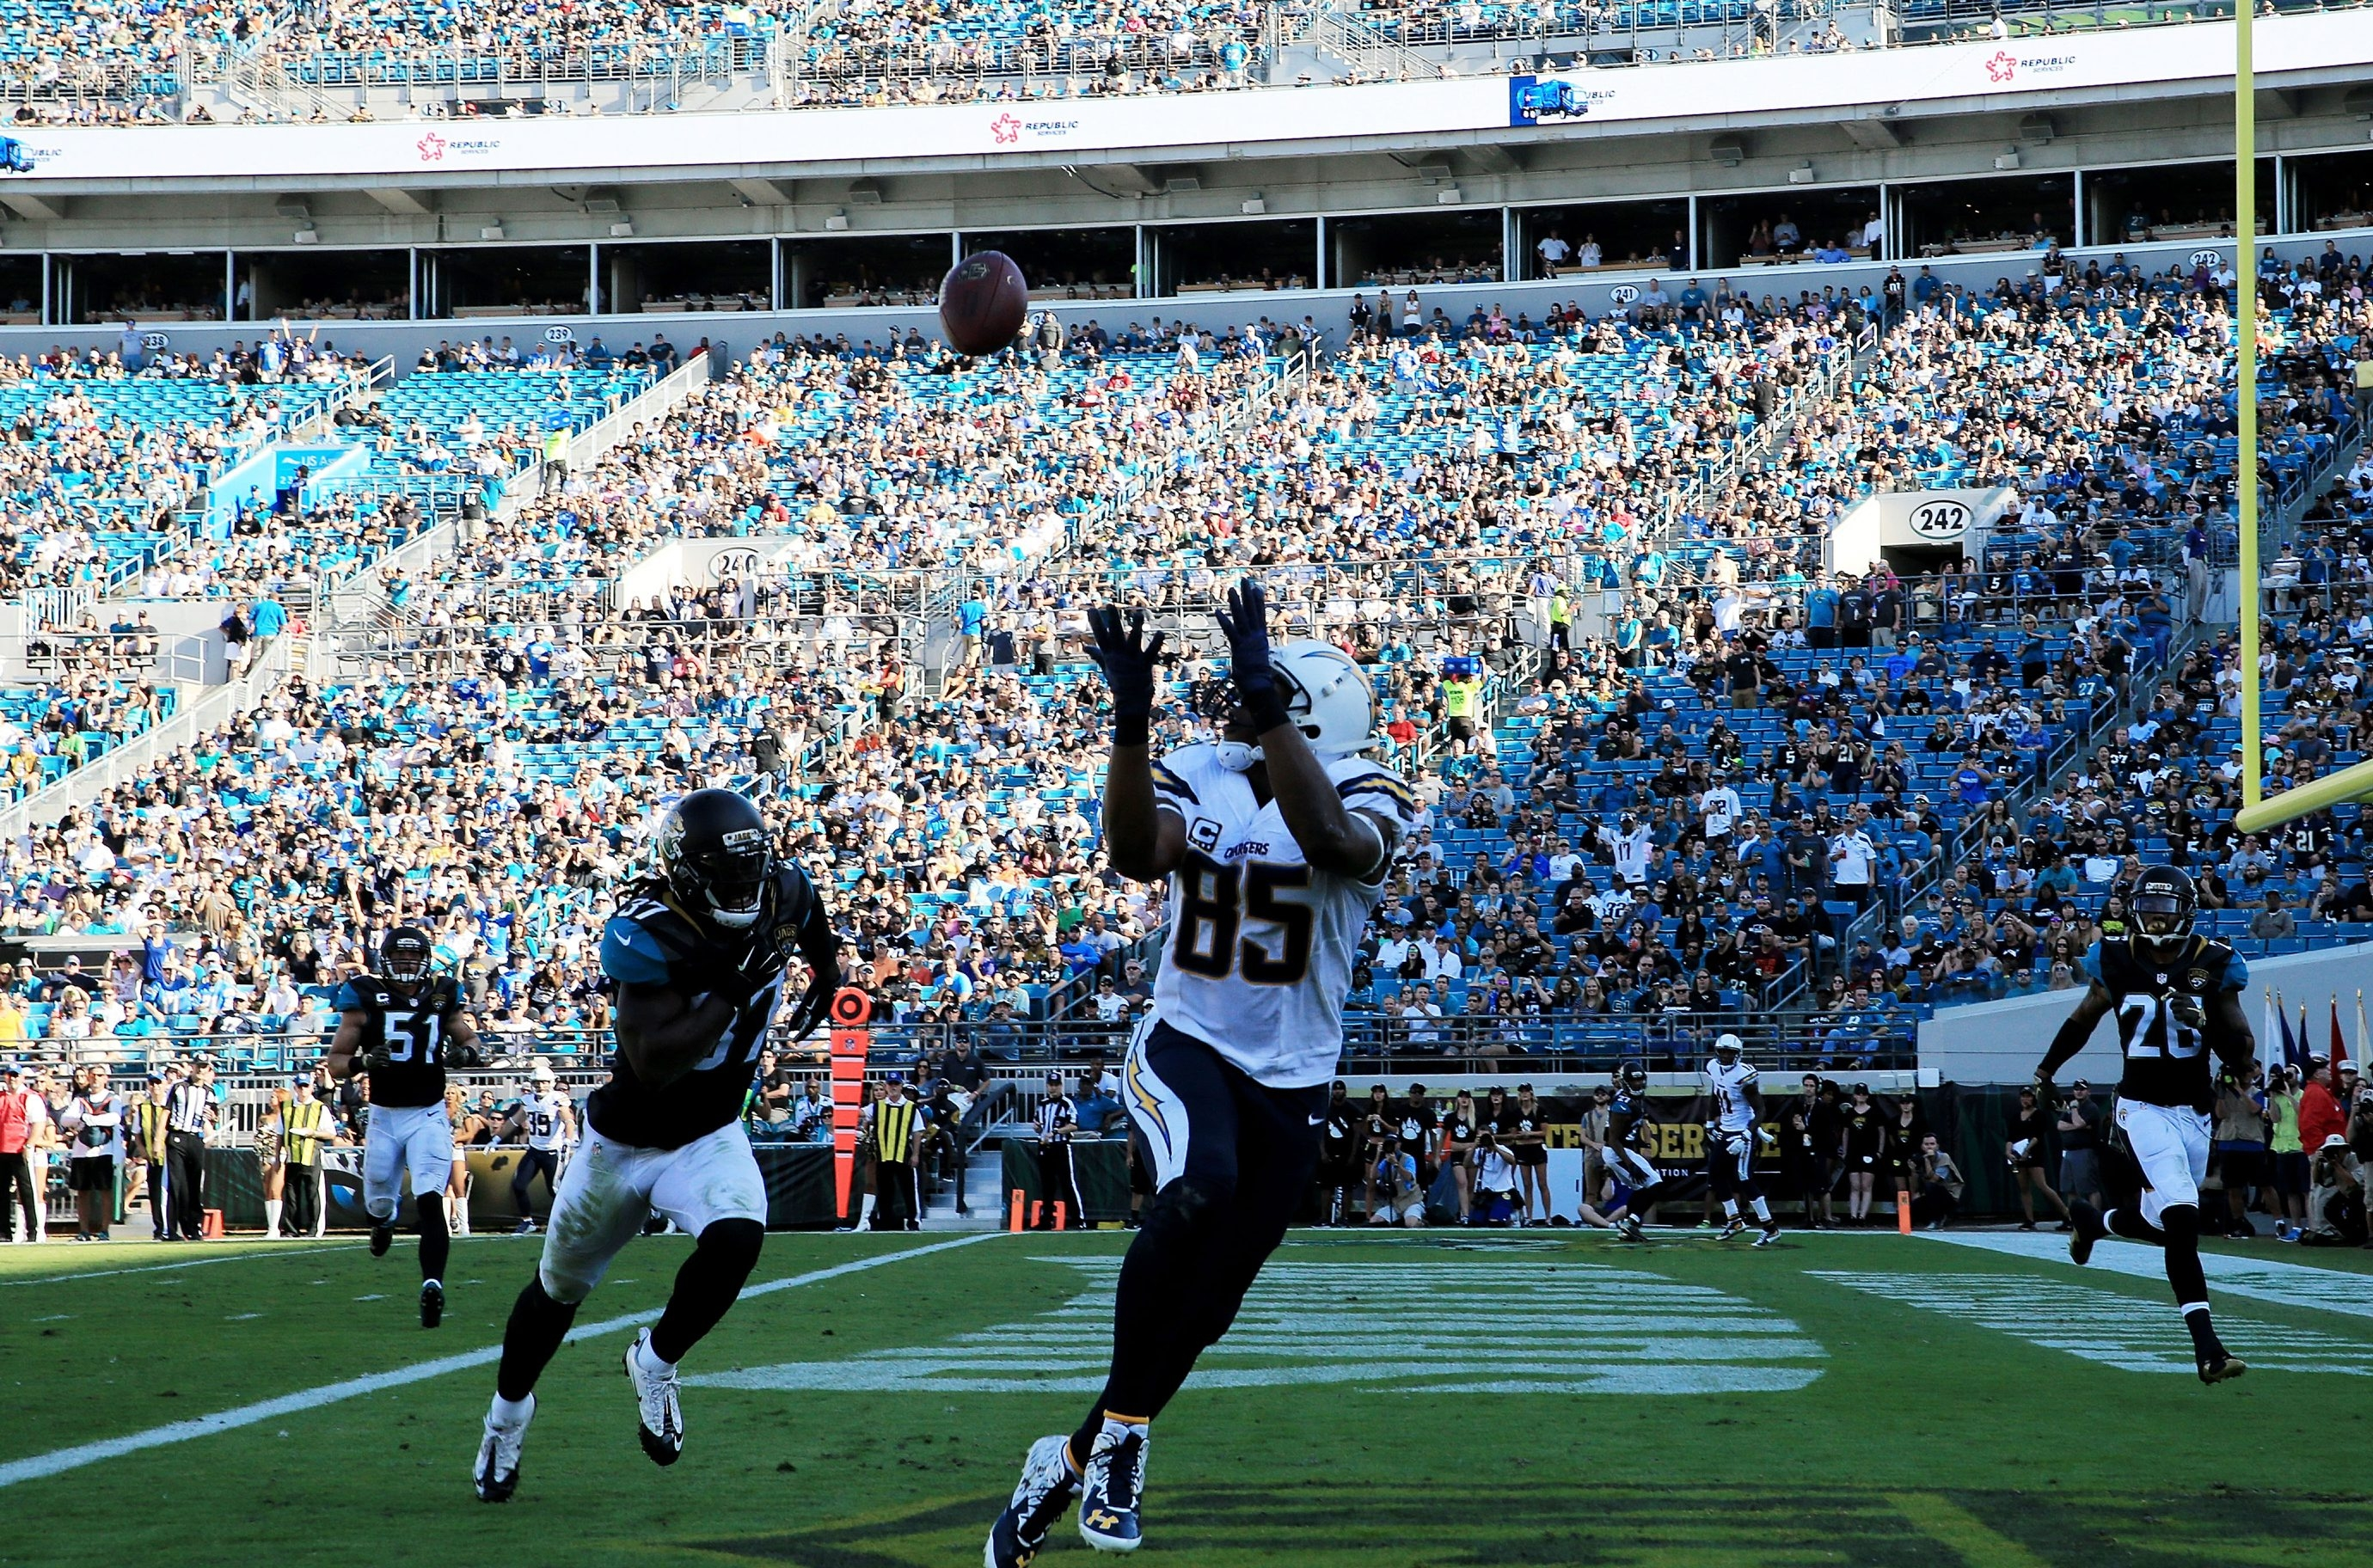 Antonio Gates (85) of the San Diego Chargers scores a touchdown in the second quarter against the Jacksonville Jaguars at EverBank Field on Nov. 29 in Jacksonville, Fla.